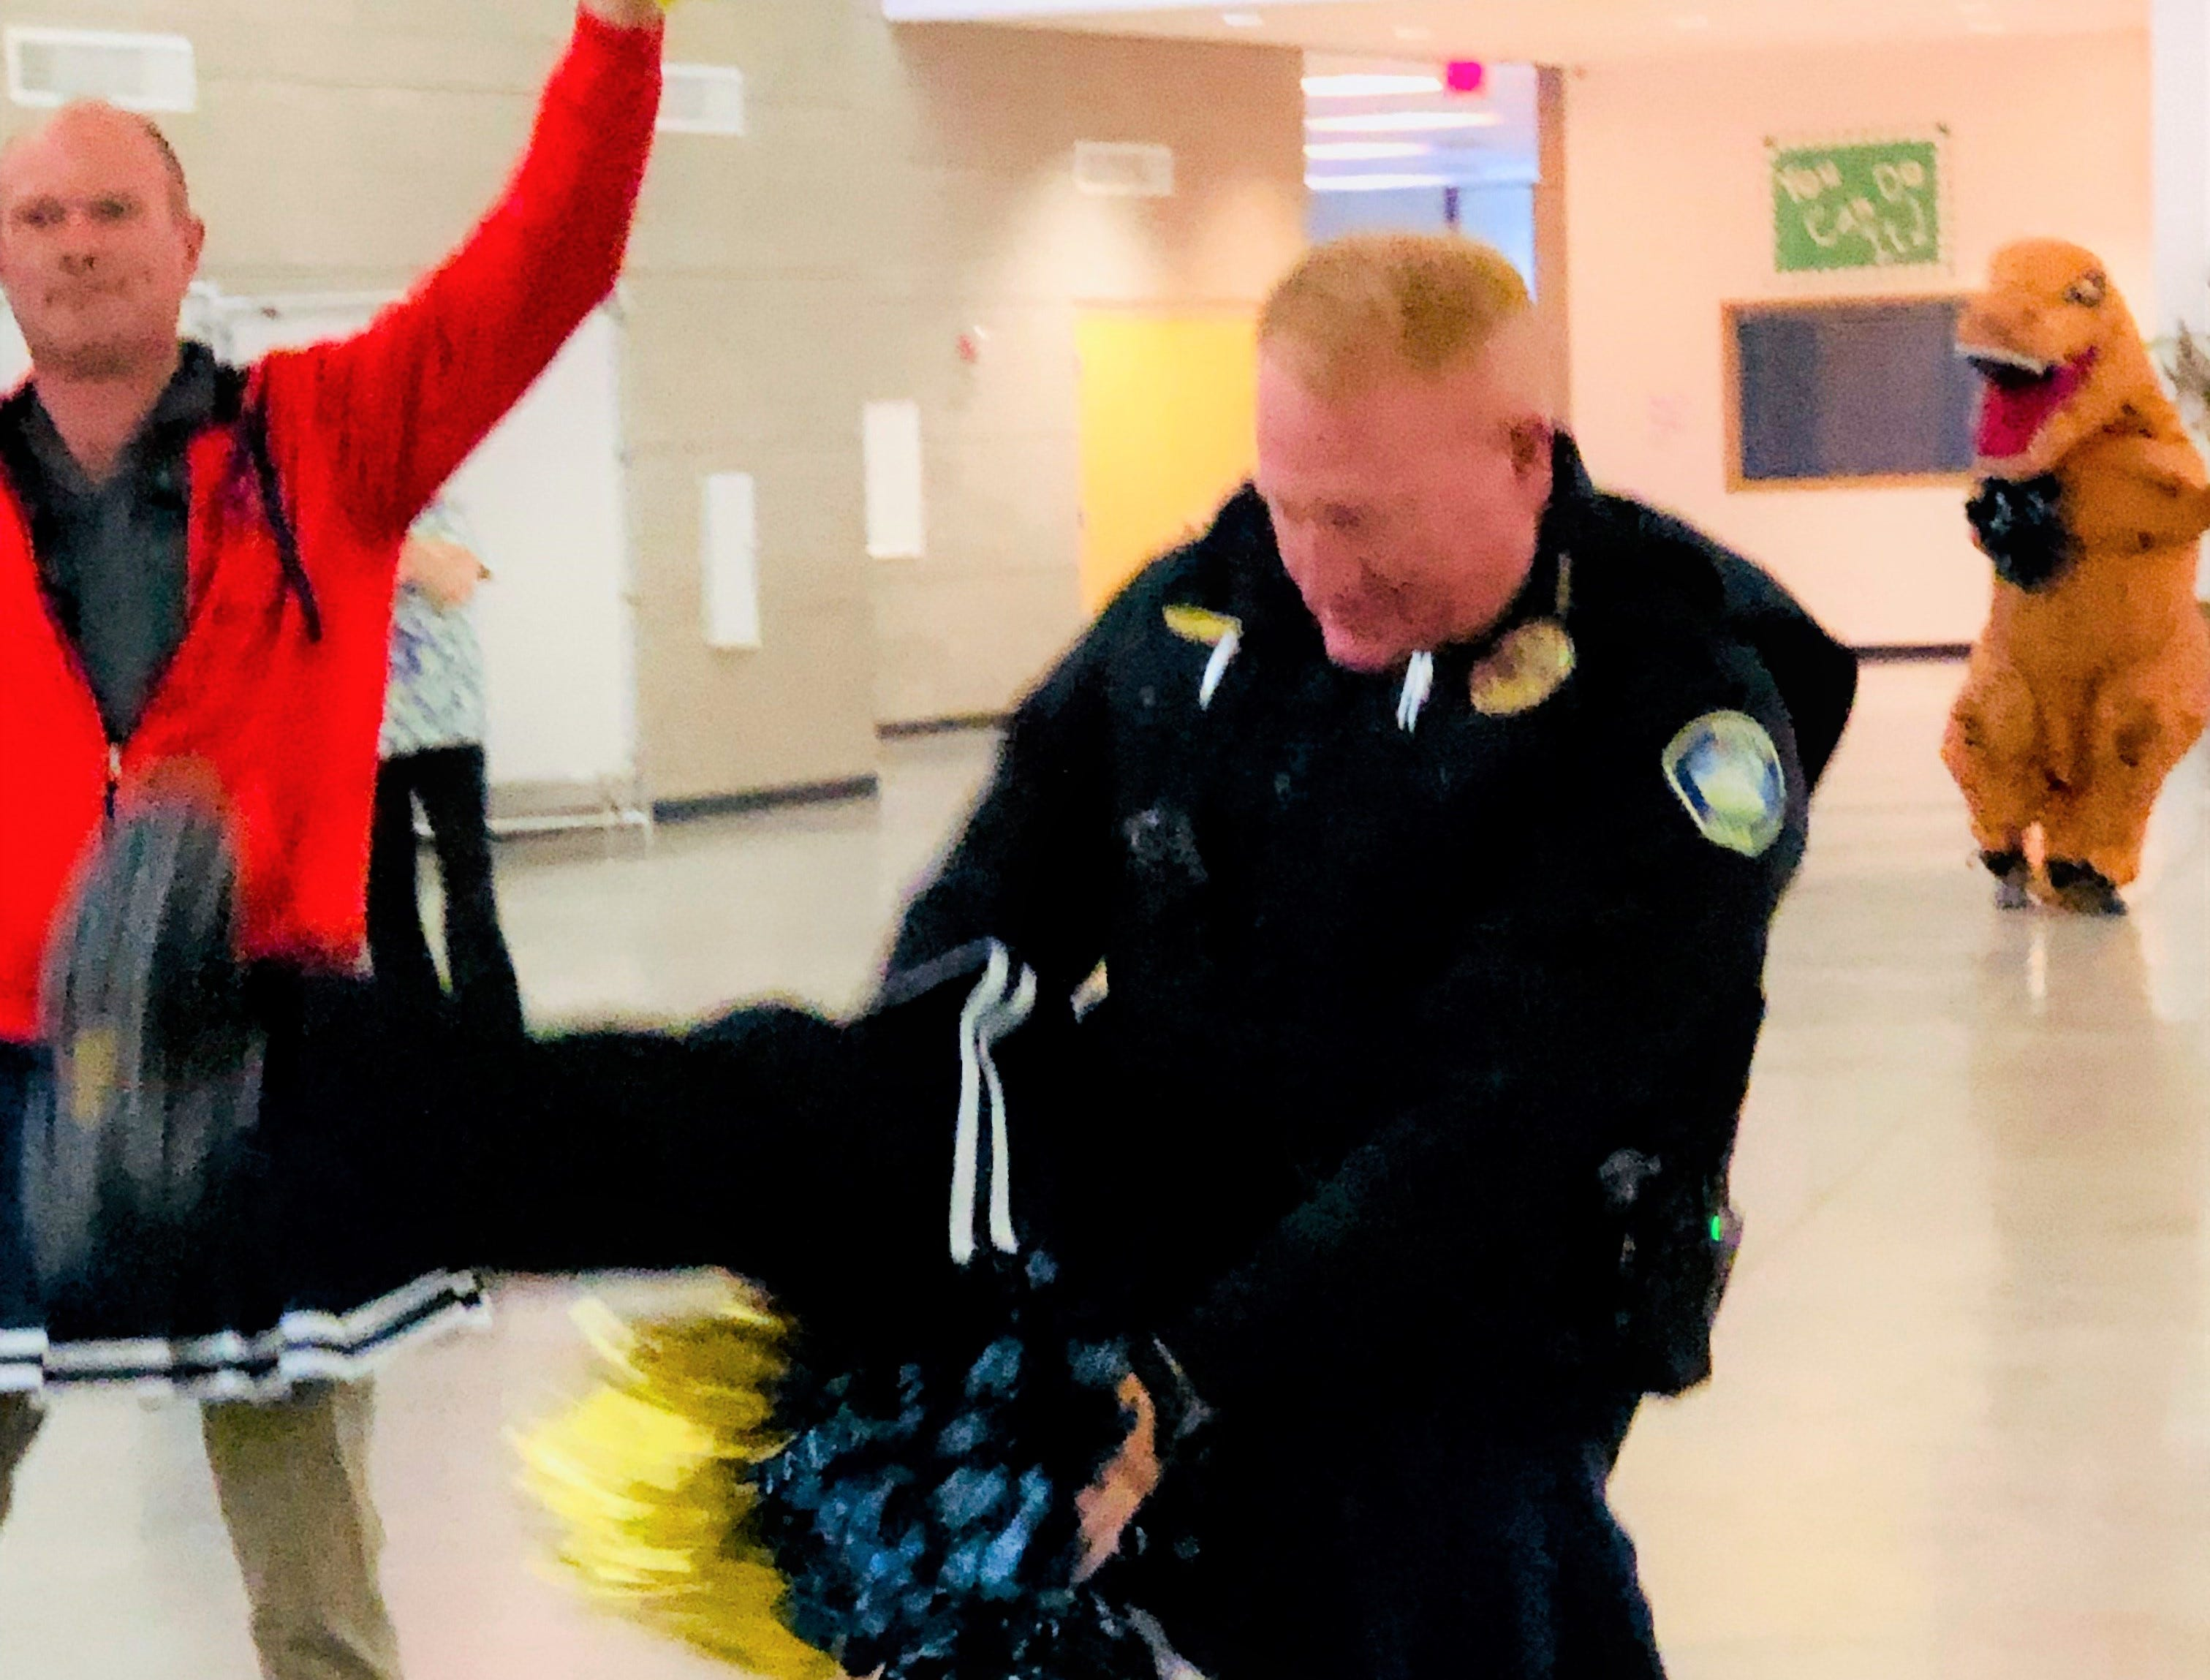 And a one, and a two...Cheer Squad Chief Hooker, school board president Luther Light (left) shake their pom-poms during a high kicking routine to encourage students during an a pep assembly at Ruidoso Middle school. It appears that T-Rex is not only photo bombing the two, but seems to be getting a kick out of their routine.